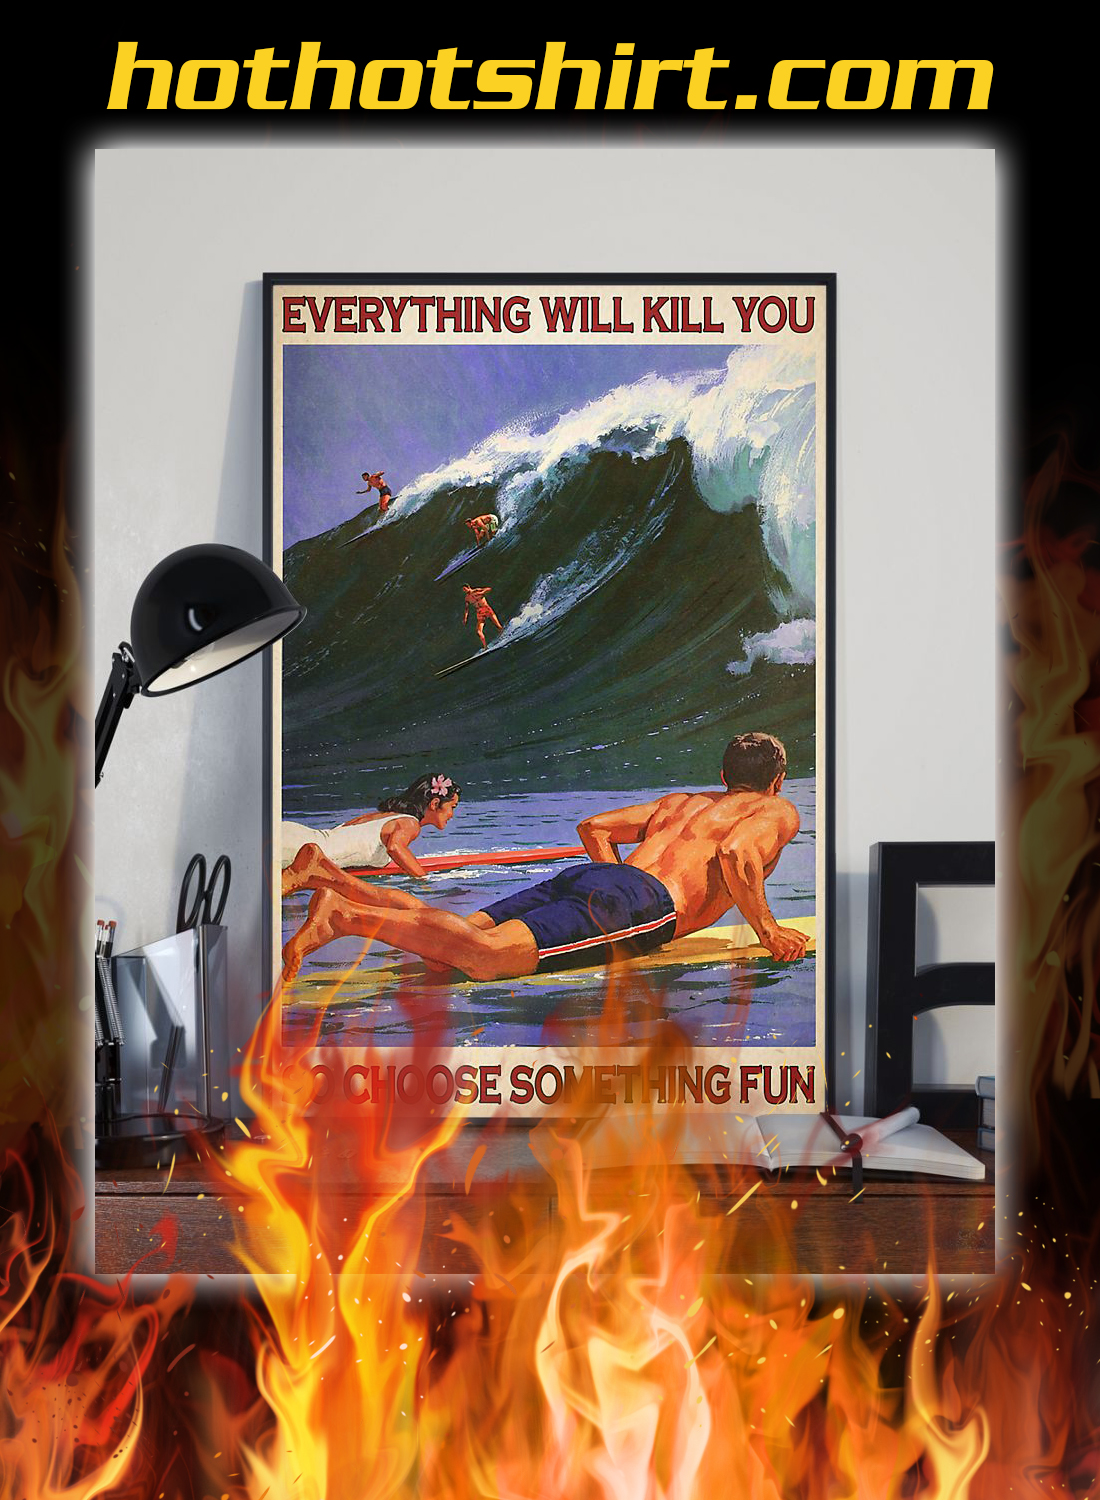 Surfing everything will kill you so choose something fun poster 2